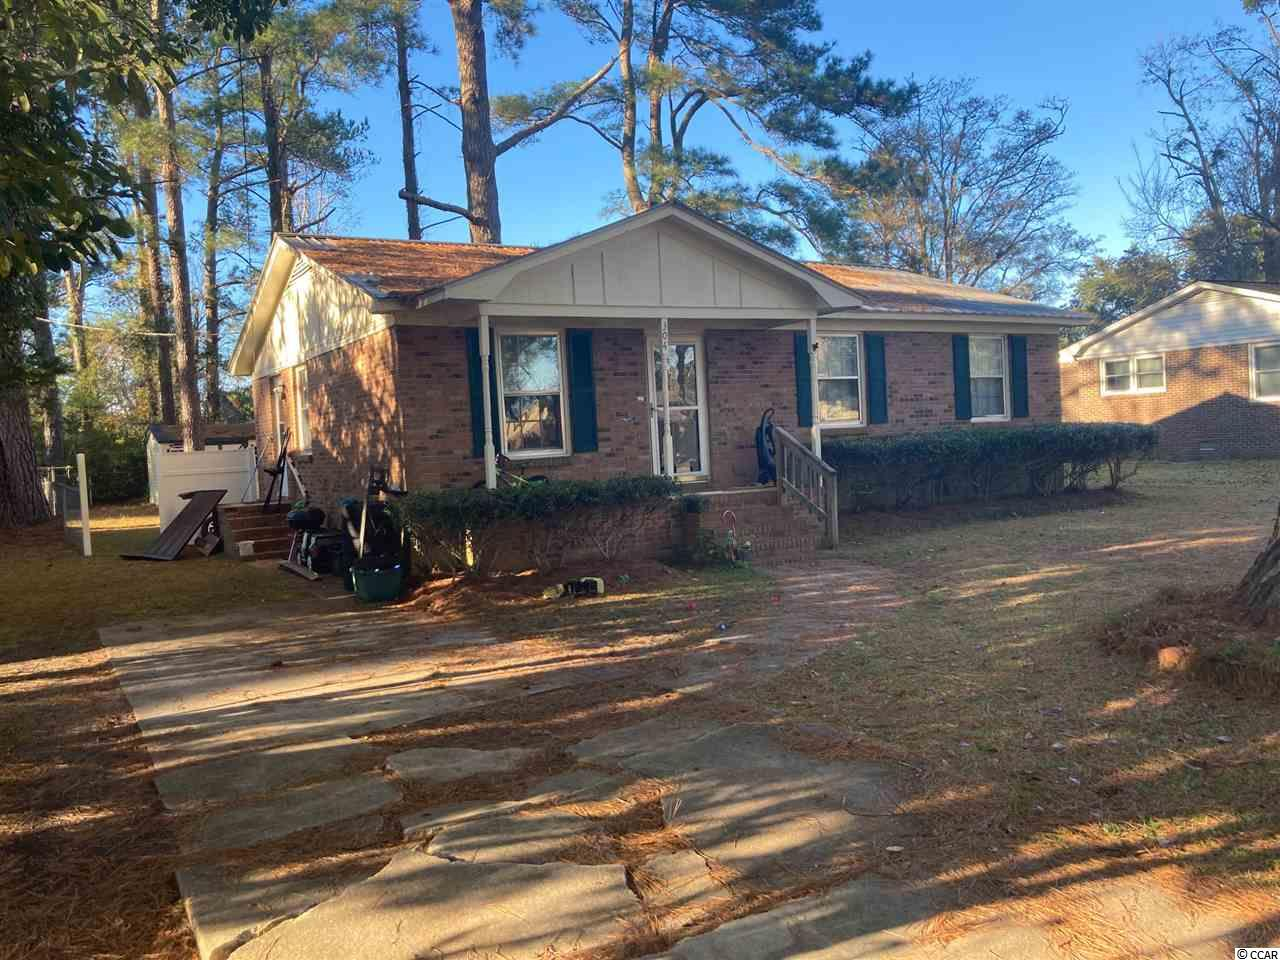 Please dont miss this great home at a great price.  Excellent schools close by, quiet neighborhood, friendly community.  If you like do some remodeling, a fixer upper, or buy it right then you cant beat 304 Heritage Rd.